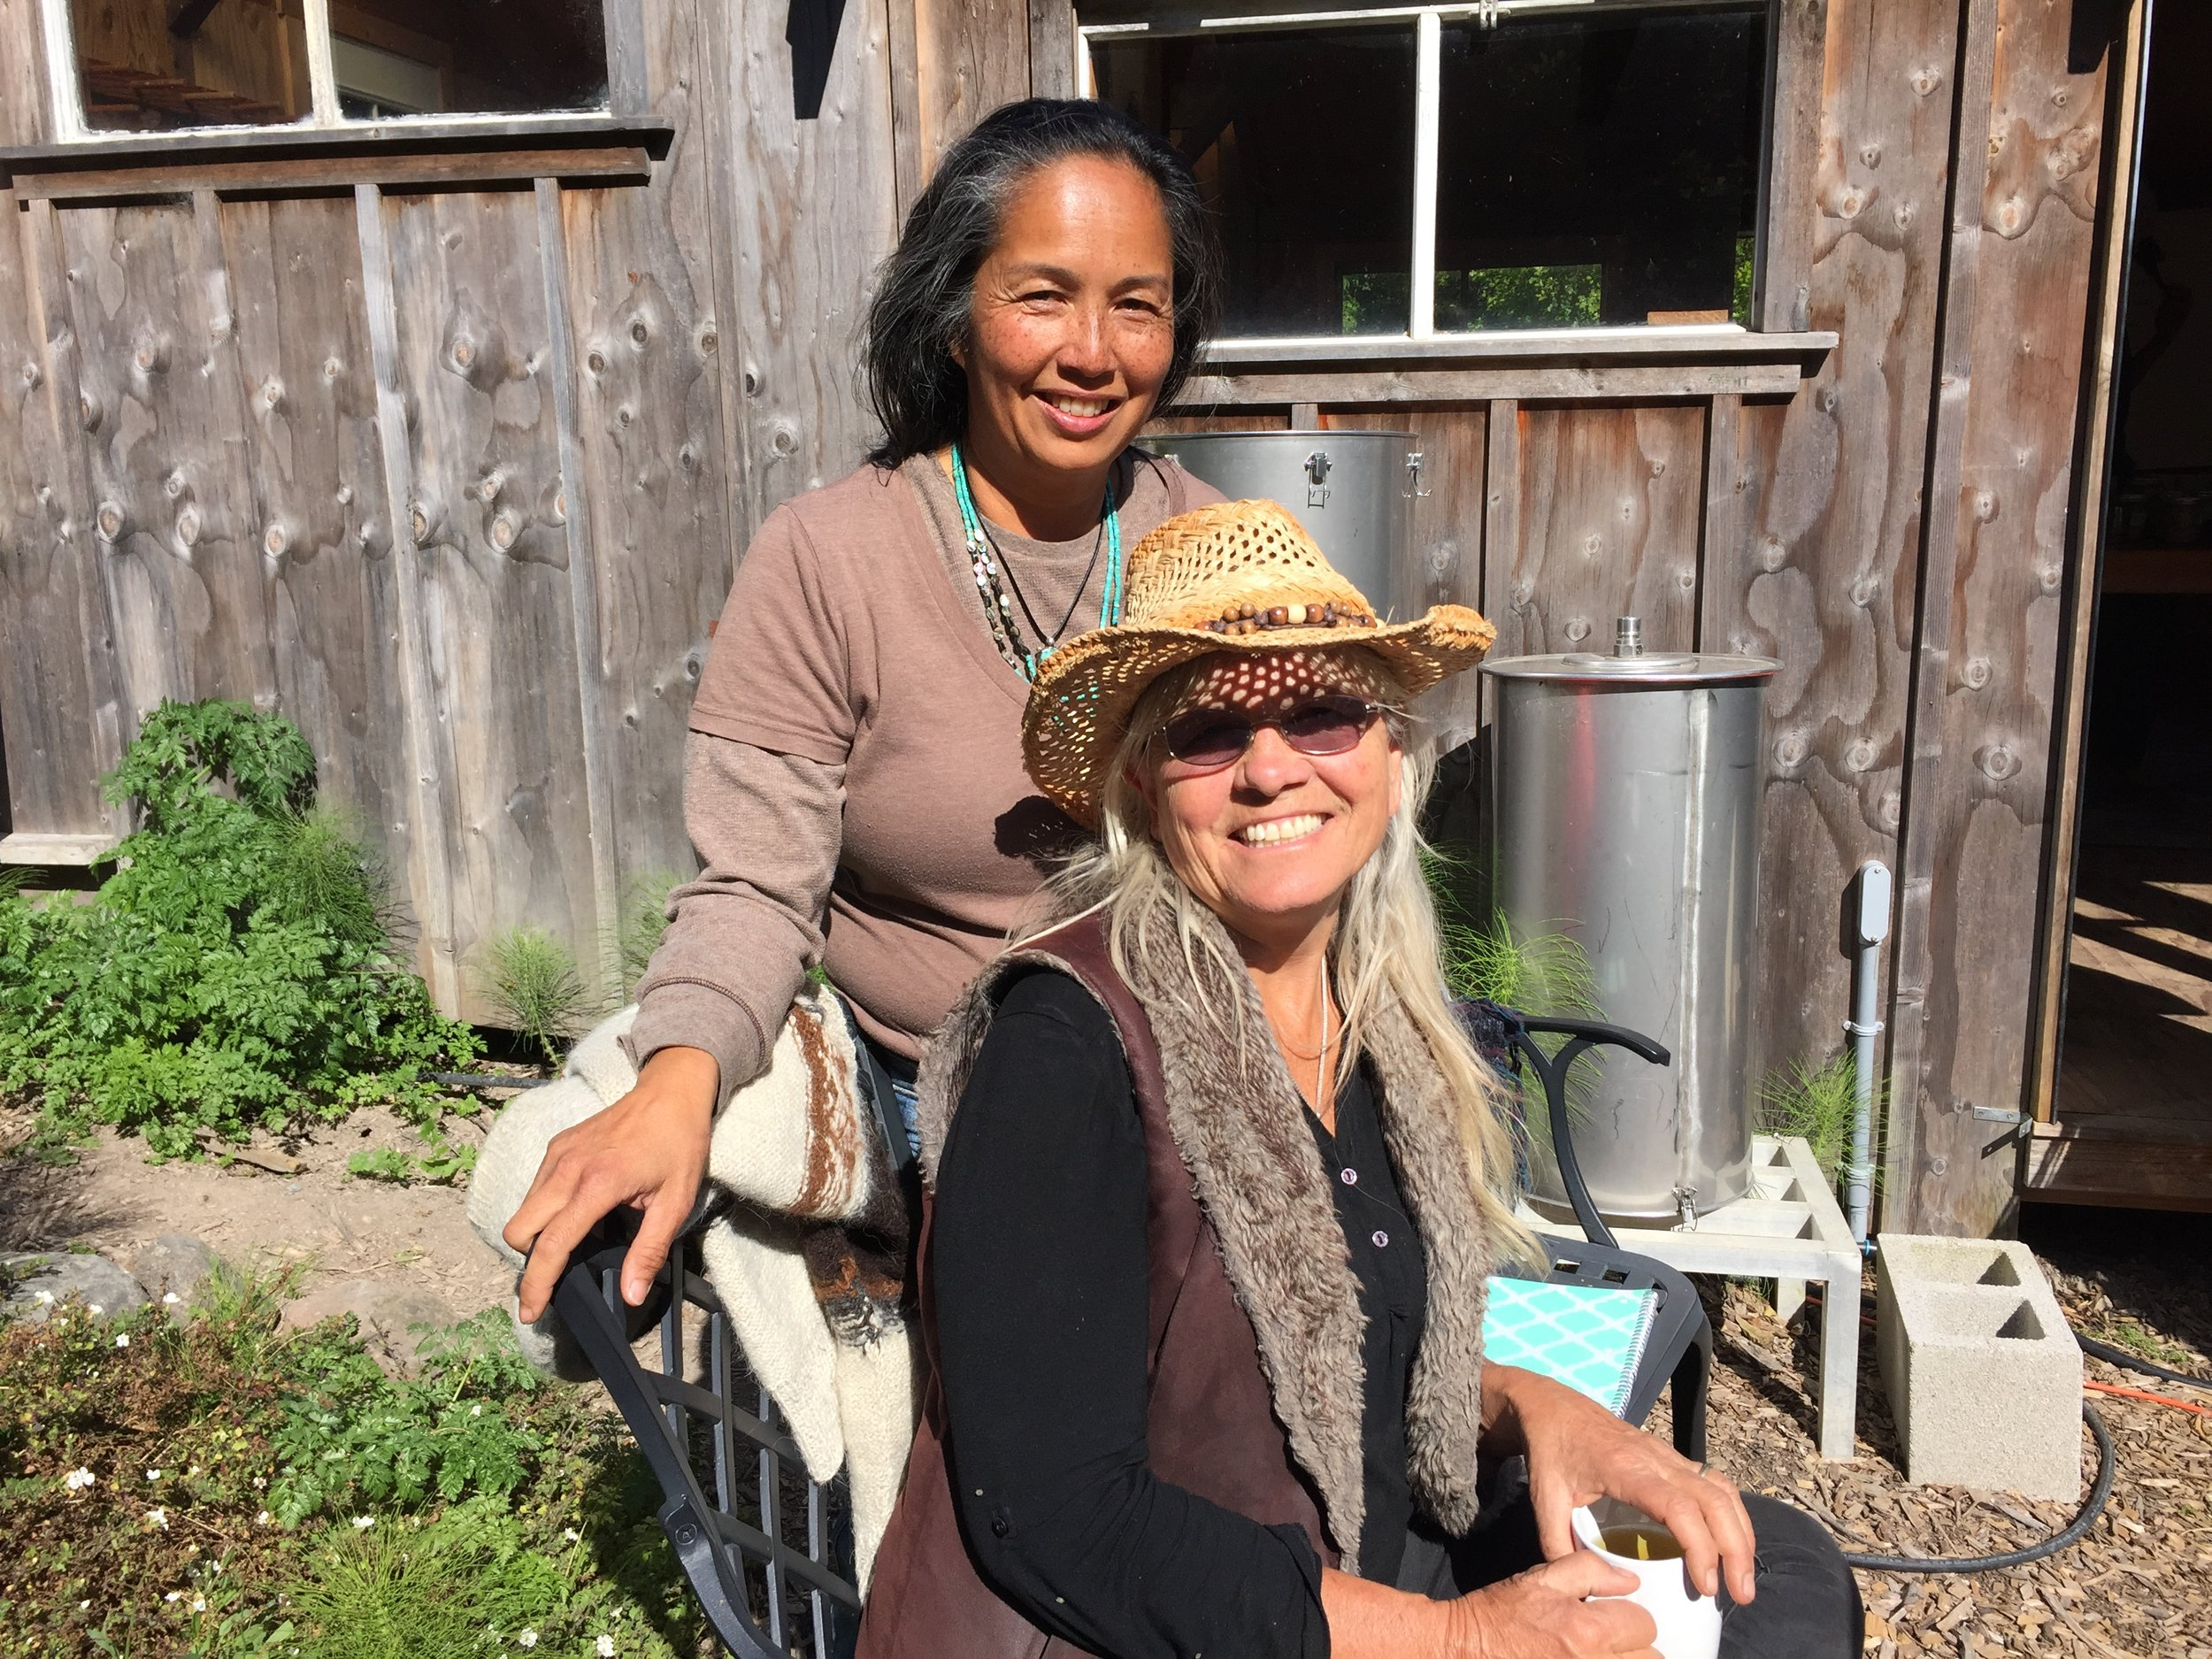 Beautiful teachers in California, Penny and Jeanette, who taught me over a series of long weekends how to use medicinal herbs